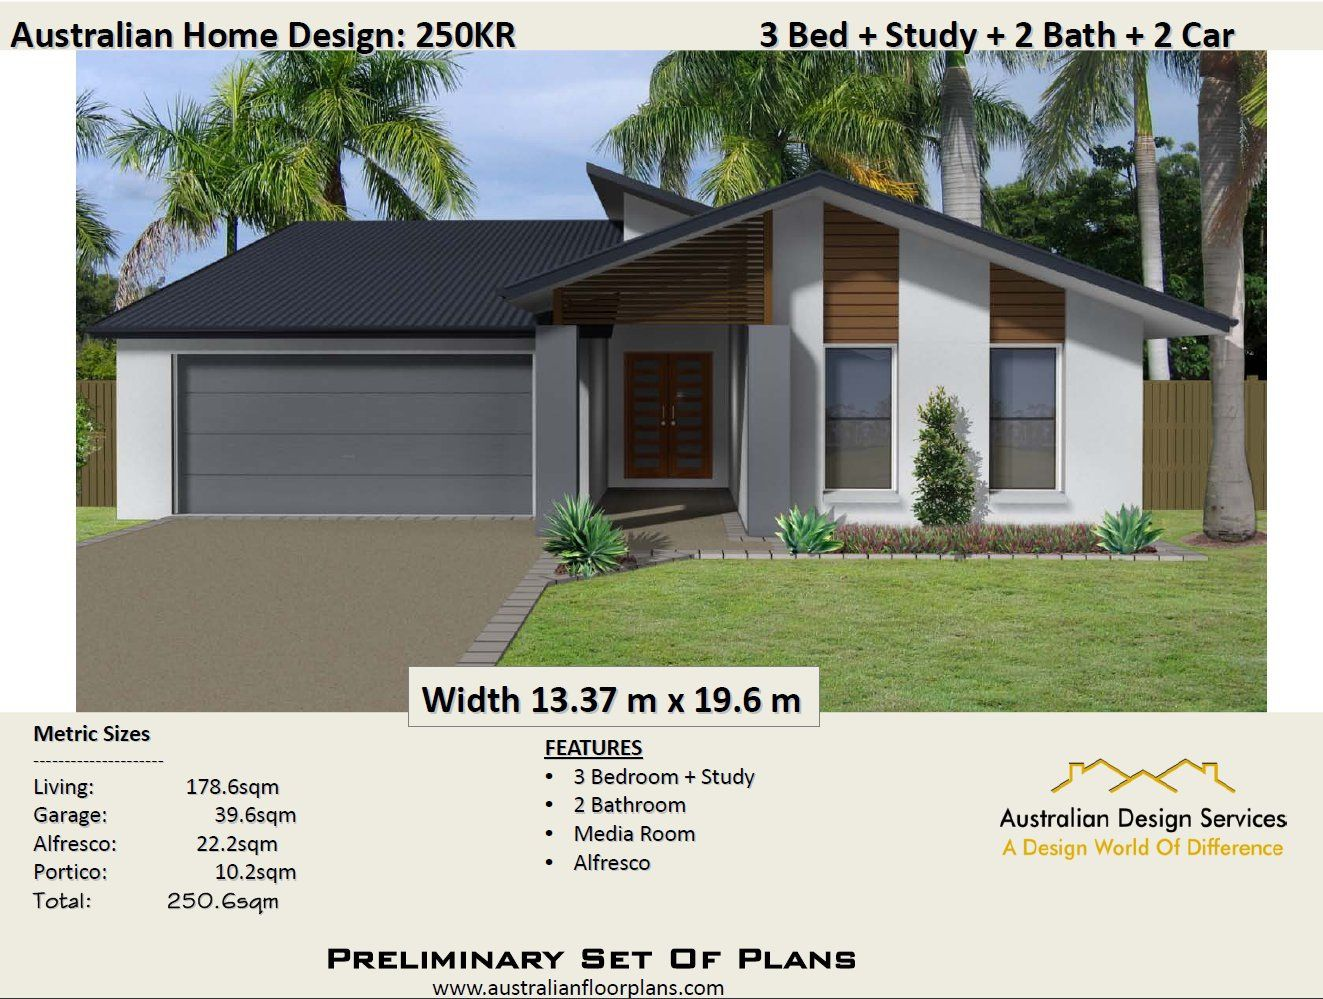 250 m2 | 3 Bedroom | 3 Bed + Study + 2 Car Modern Design ...  Bedroom Study House Plans on bungalow house plans, i shaped house plans, shop house plans, 14 bedroom house plans, pet friendly house plans, modern ranch house plans, floor plans, 3-bedroom cabin plans, 3 storey house plans, great room house plans, tiny house plans, sims 3 house plans, 1200 sf house plans, unique house plans, cabin house plans, duplex house plans, design tech house plans, 5 bedroom ranch house plans, 6 bedroom house plans, simple house plans,